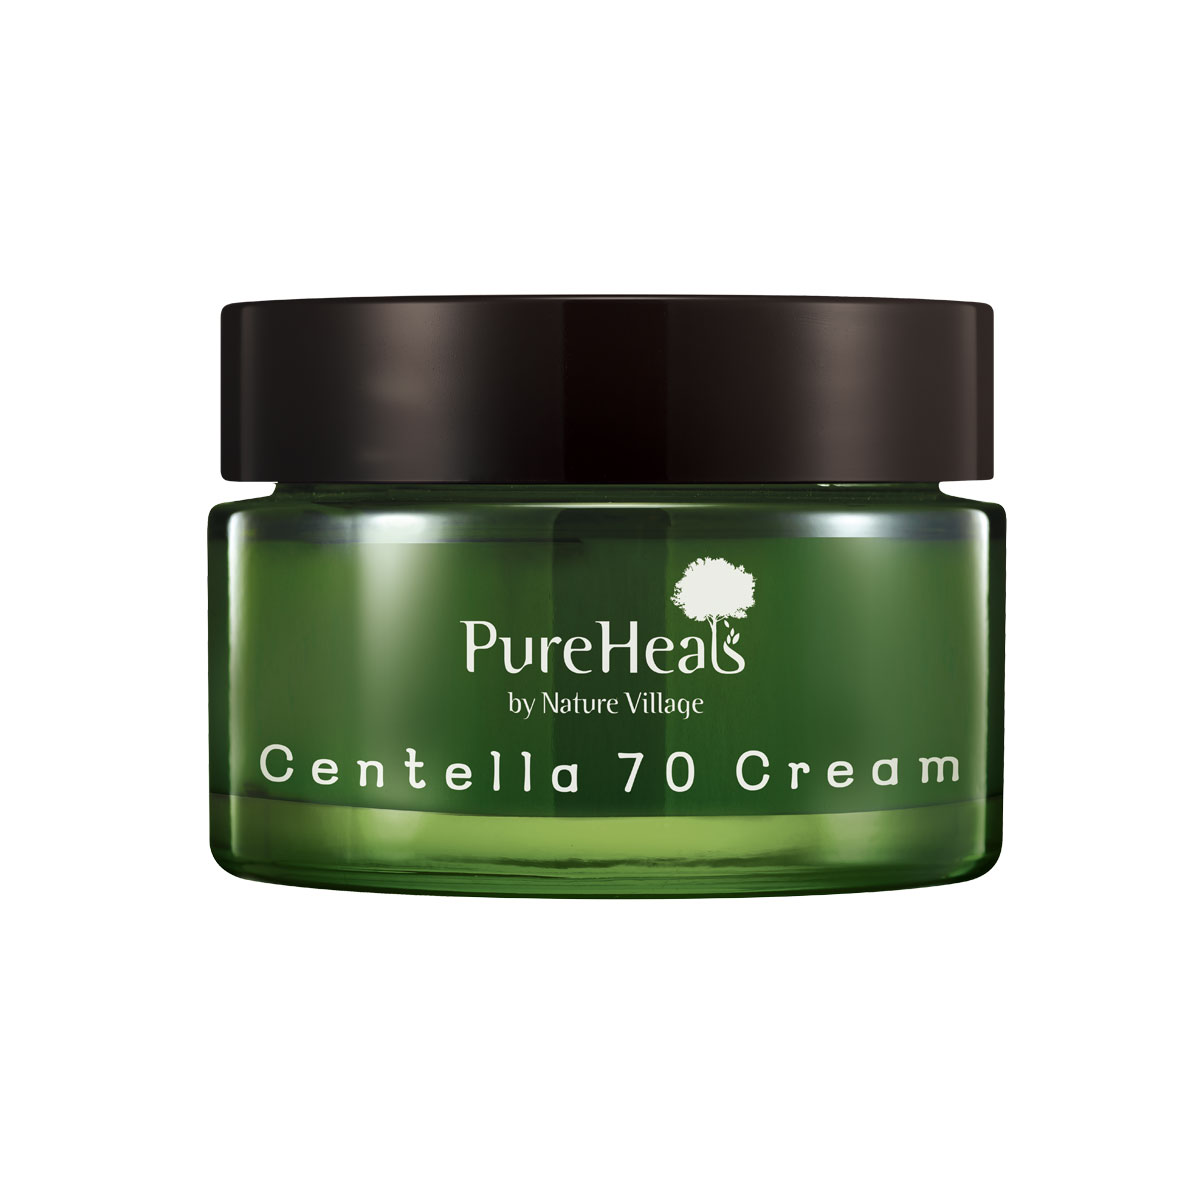 Pureheals Centella 70 Cream 50ml